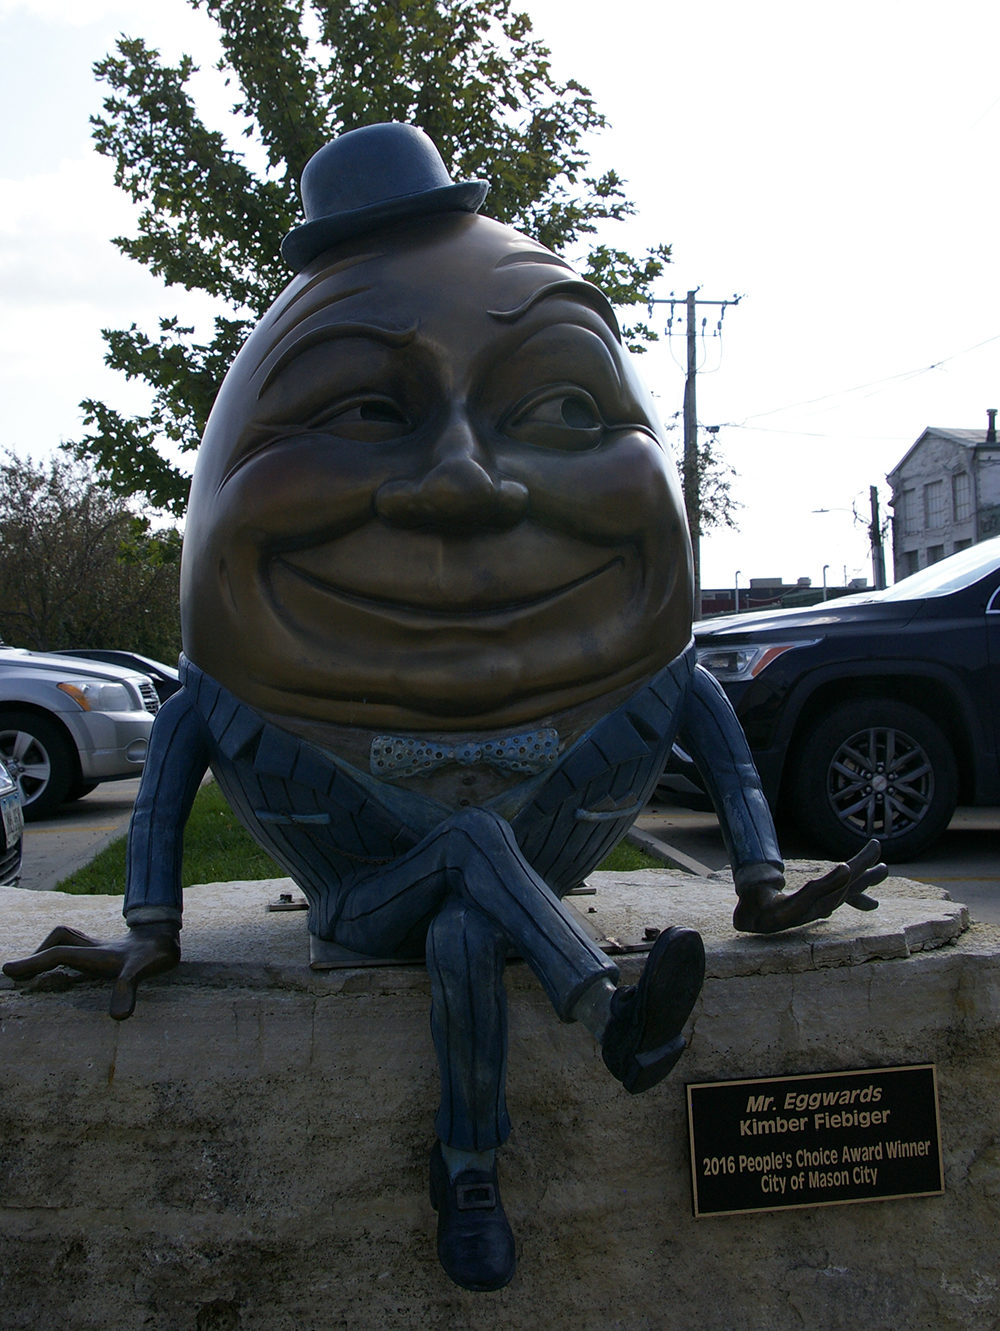 Metal Humpty Dumpty sculpture along the River City Sculptures on Parade in Mason City, Iowa